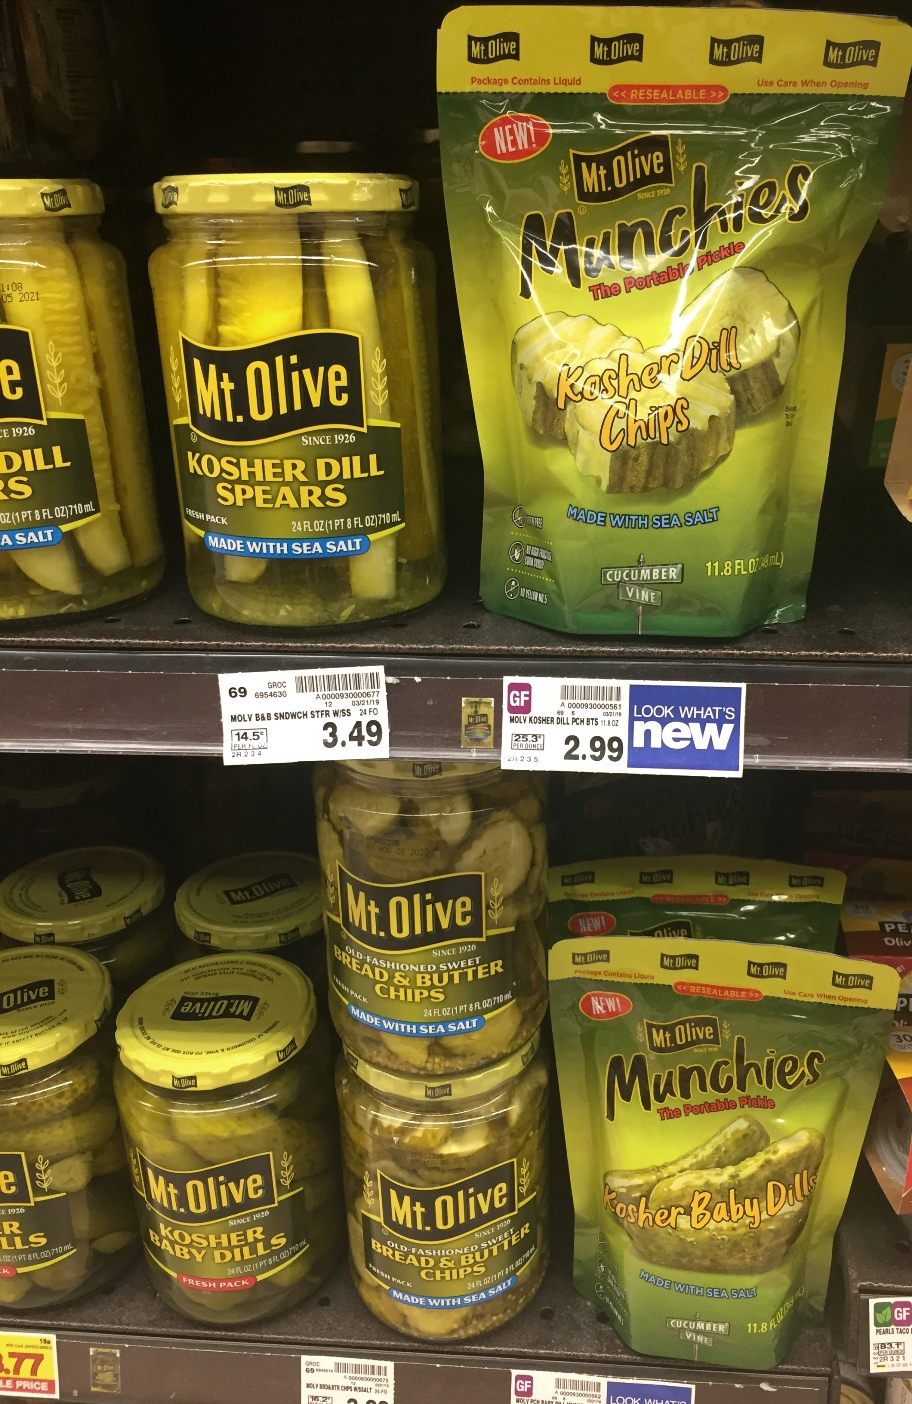 Mt. Olive pickles